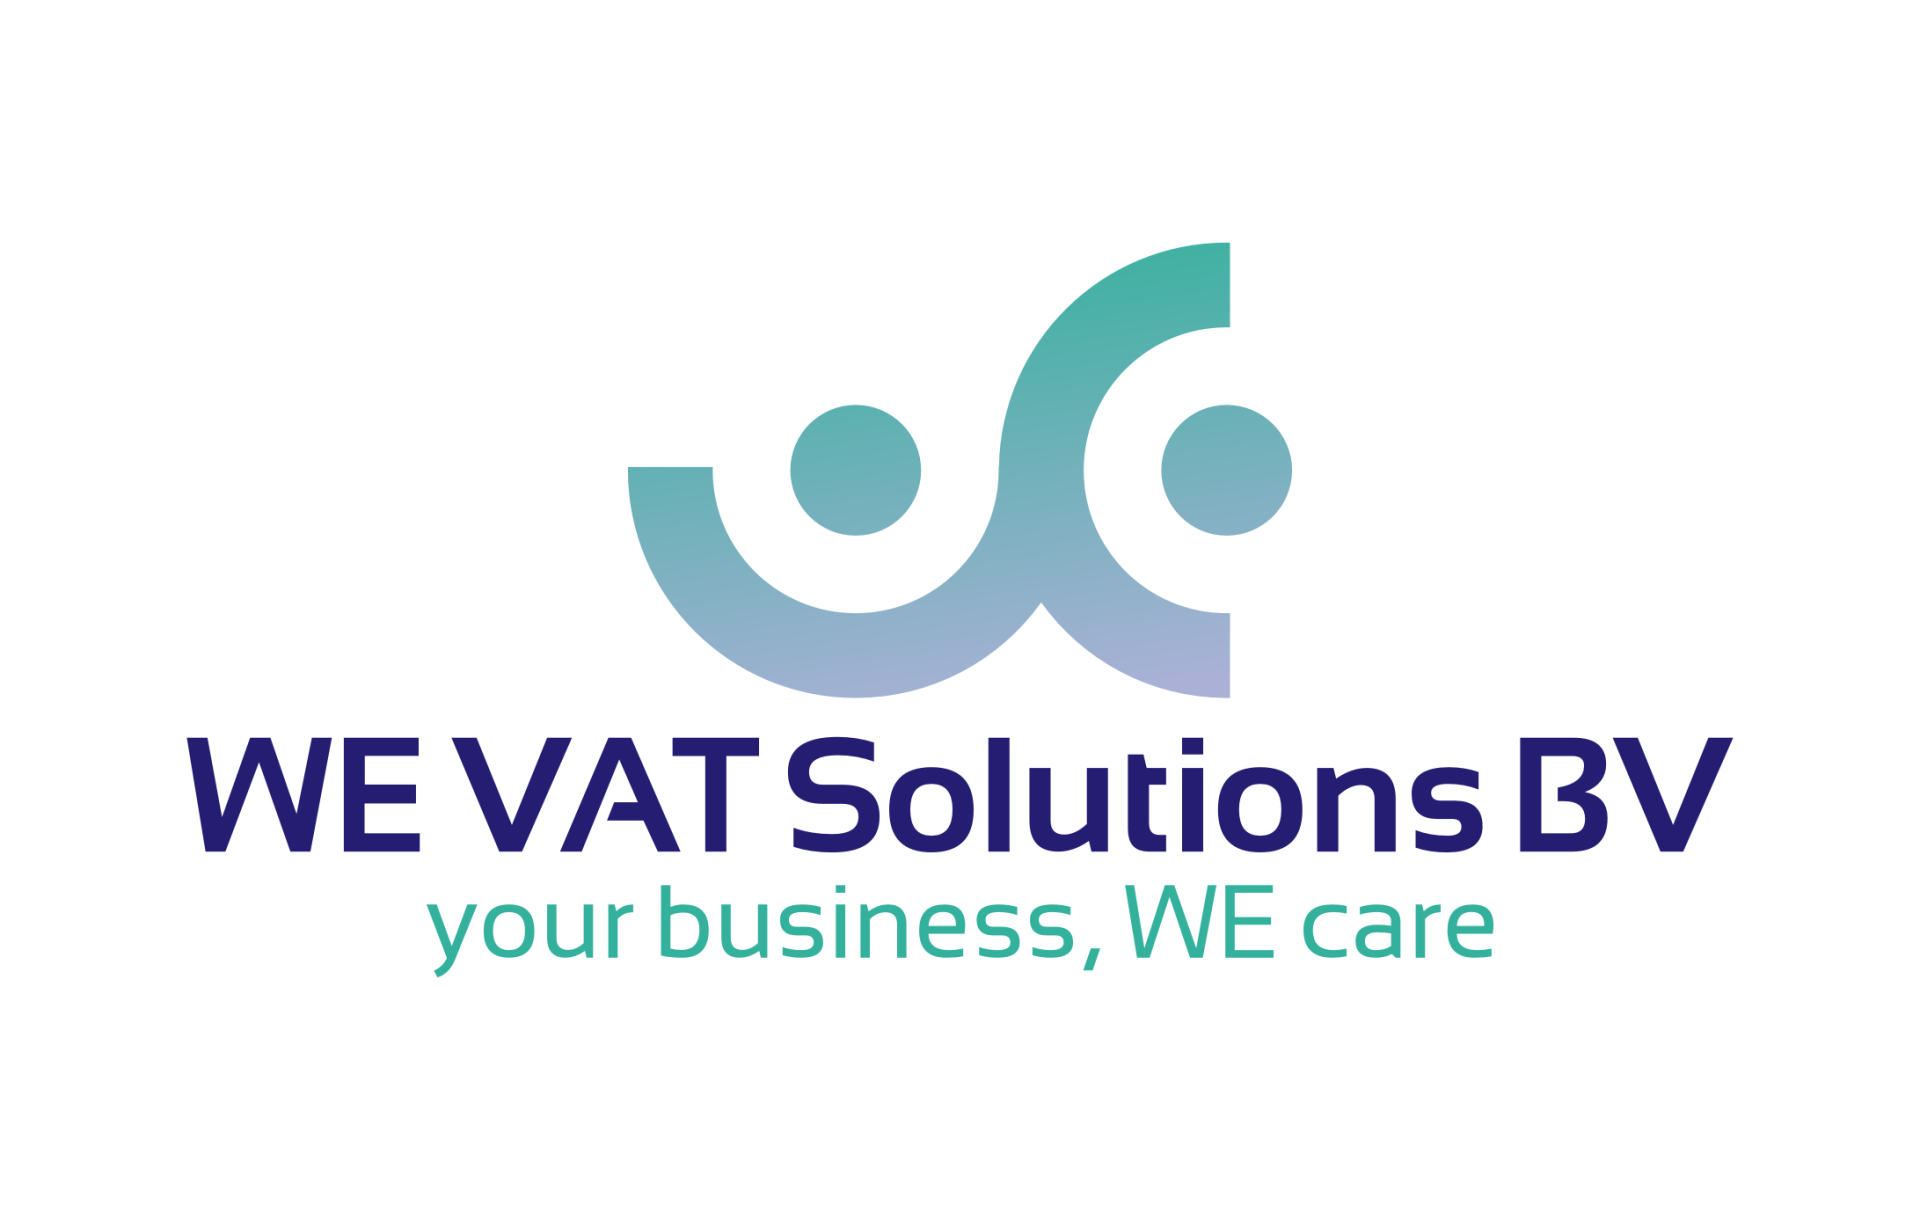 WE VAT Solutions BV